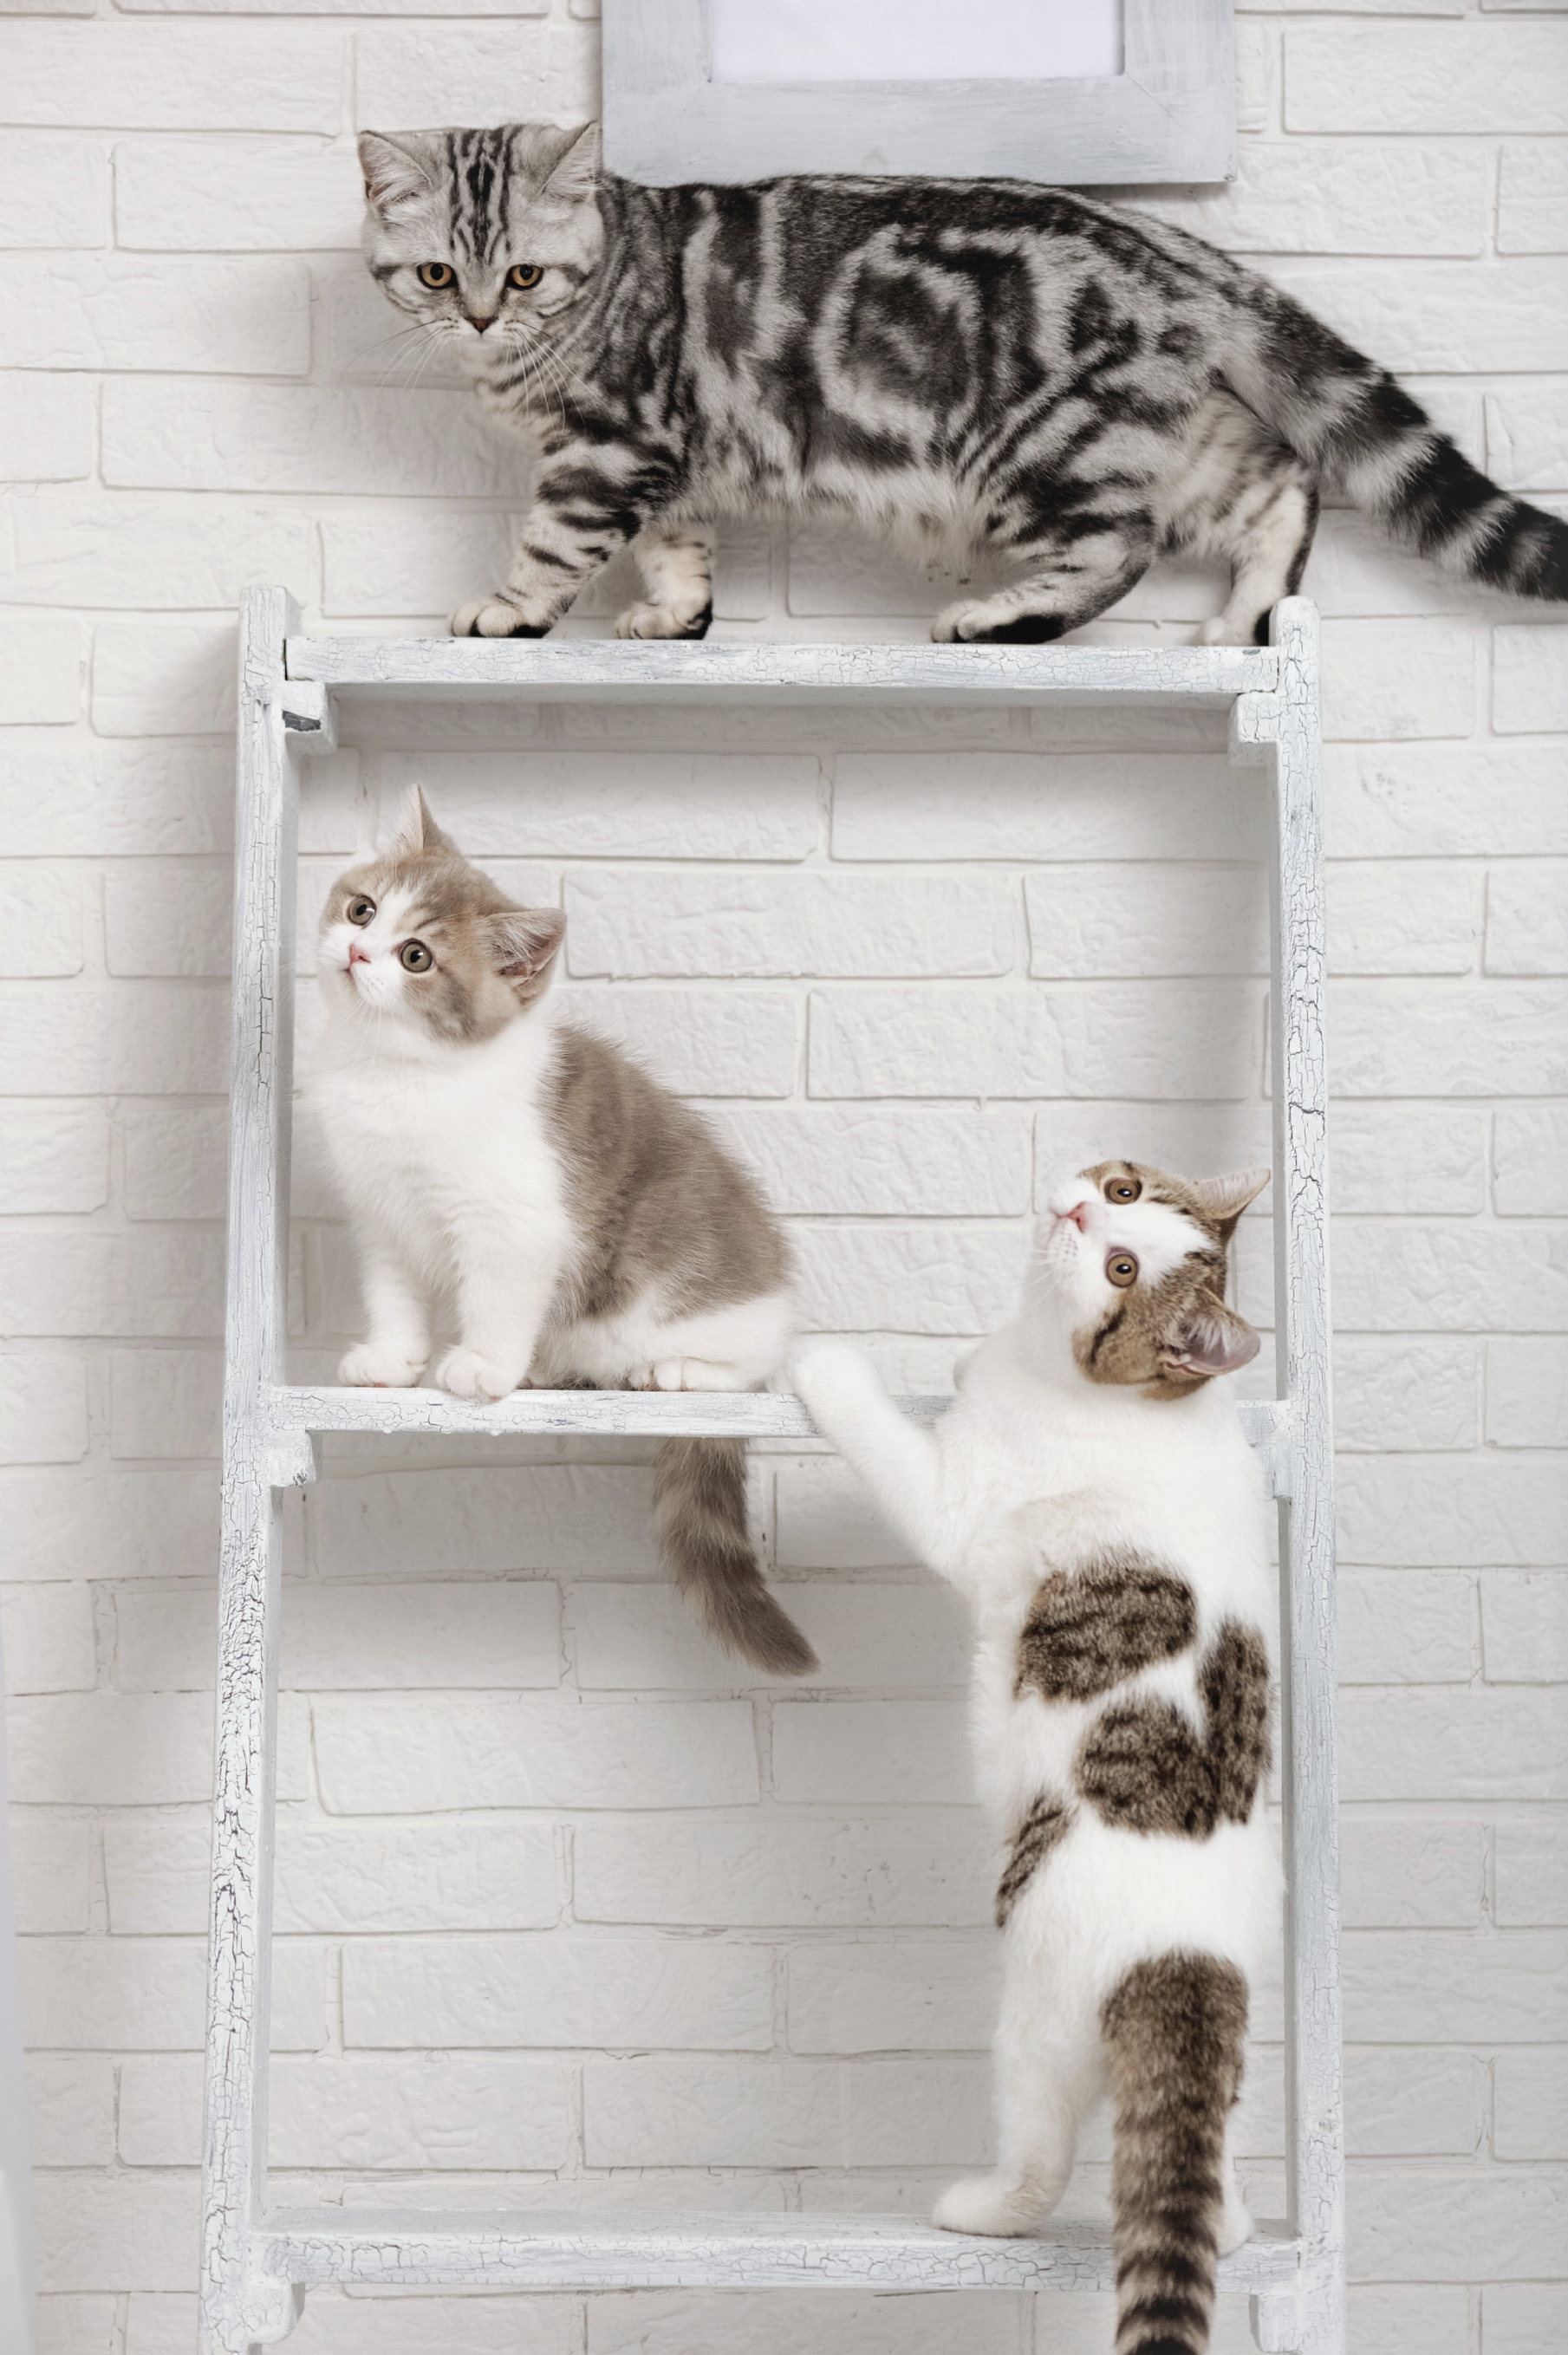 How To Keep Cats Off Shelves